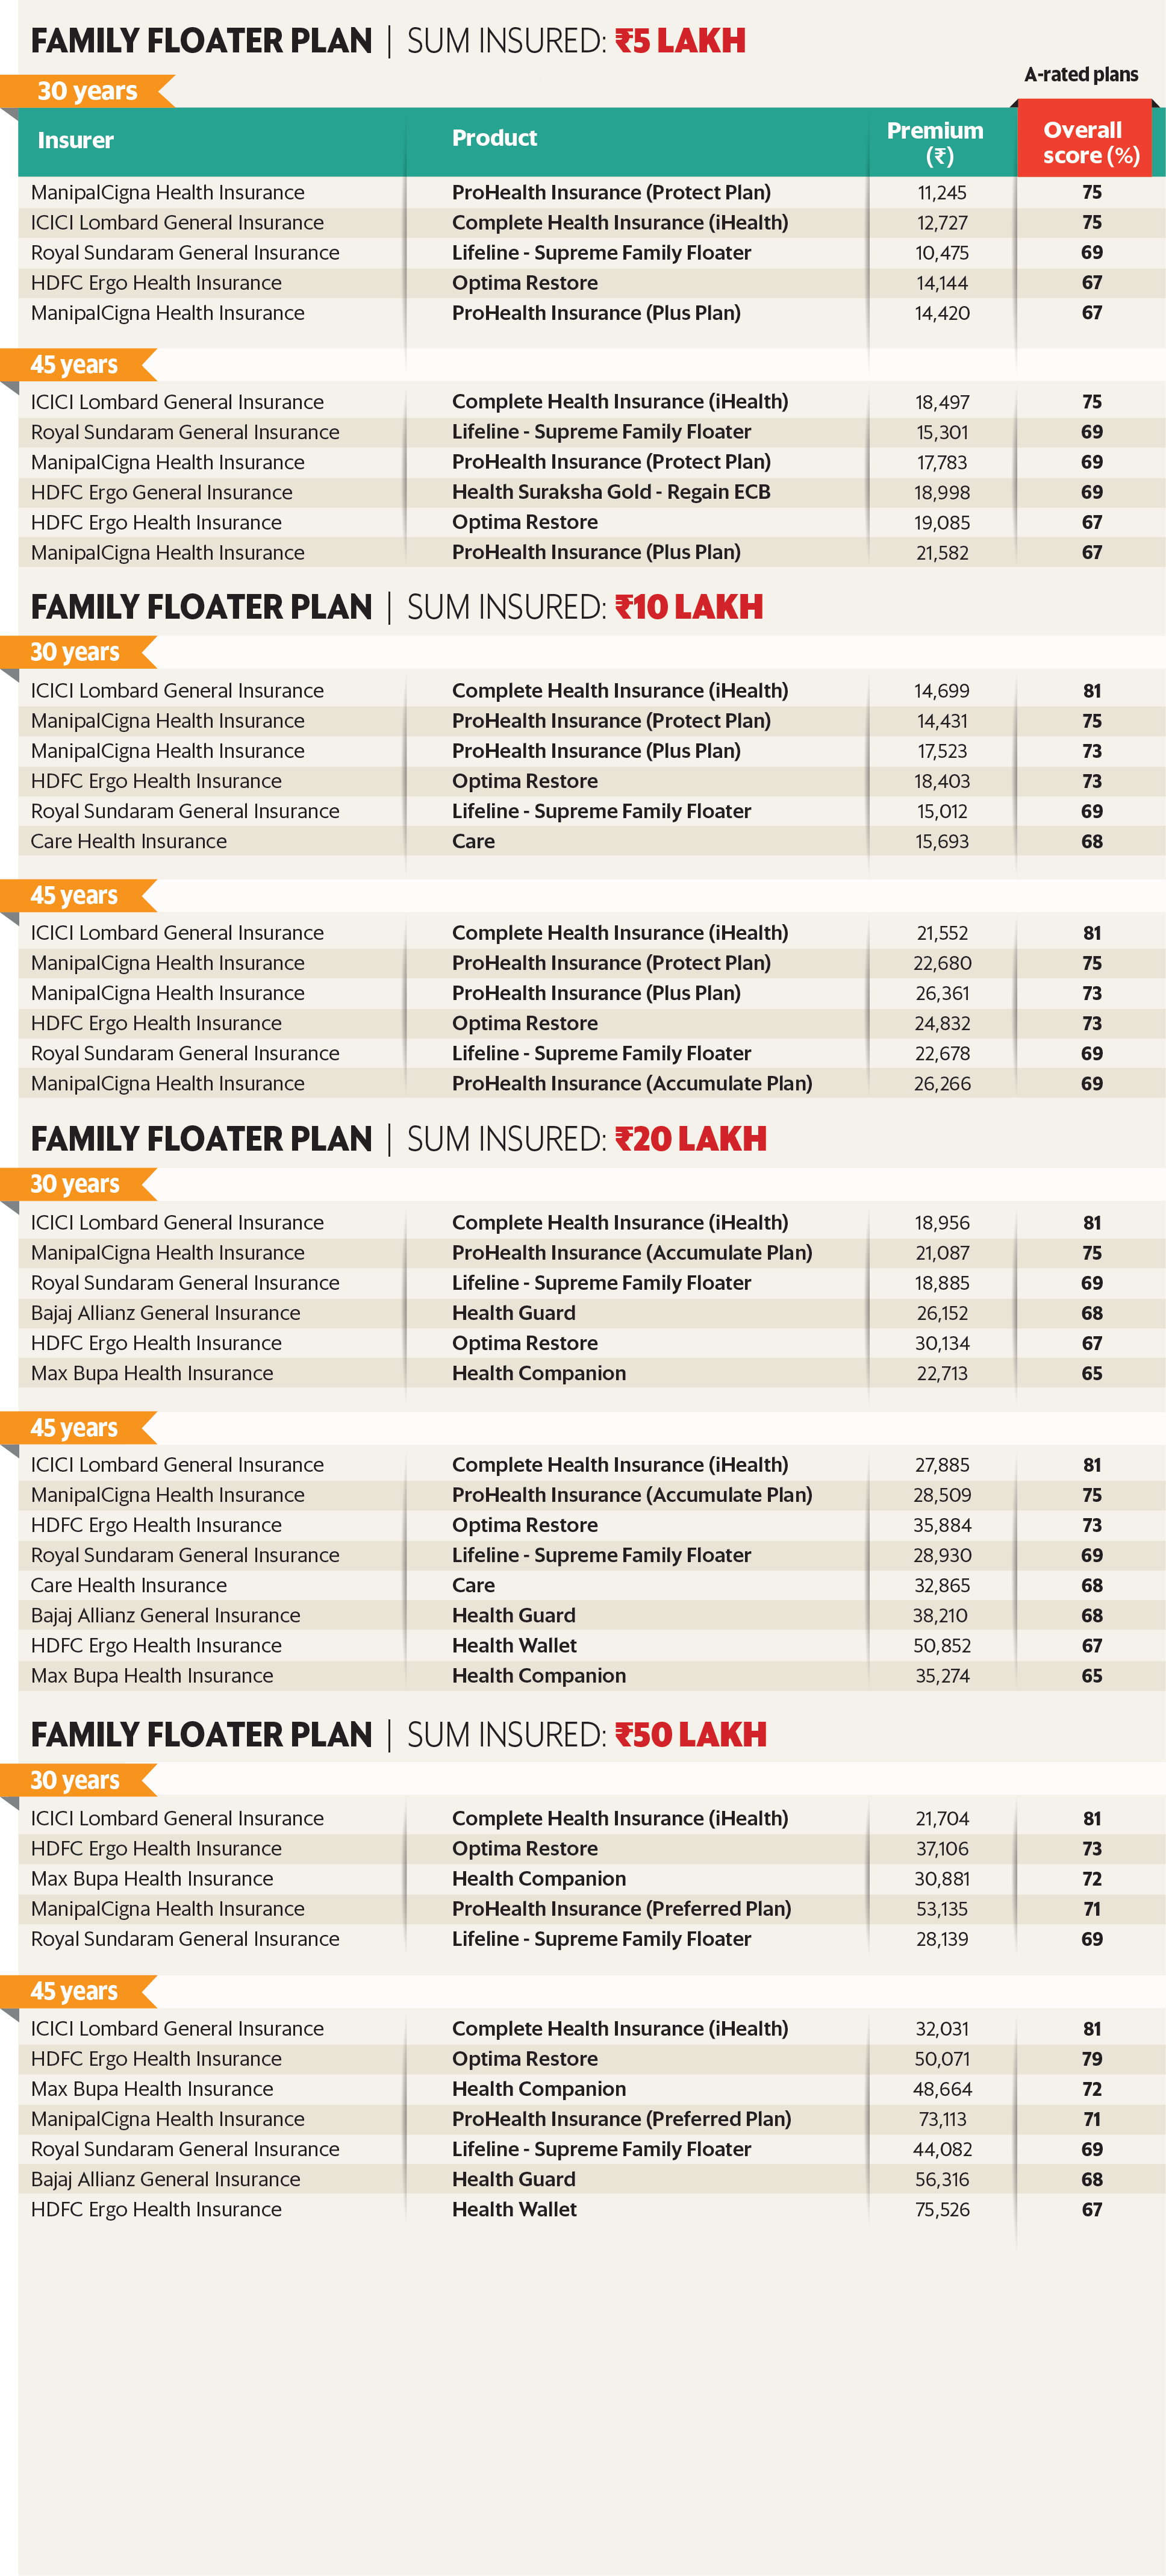 Family Floater plan